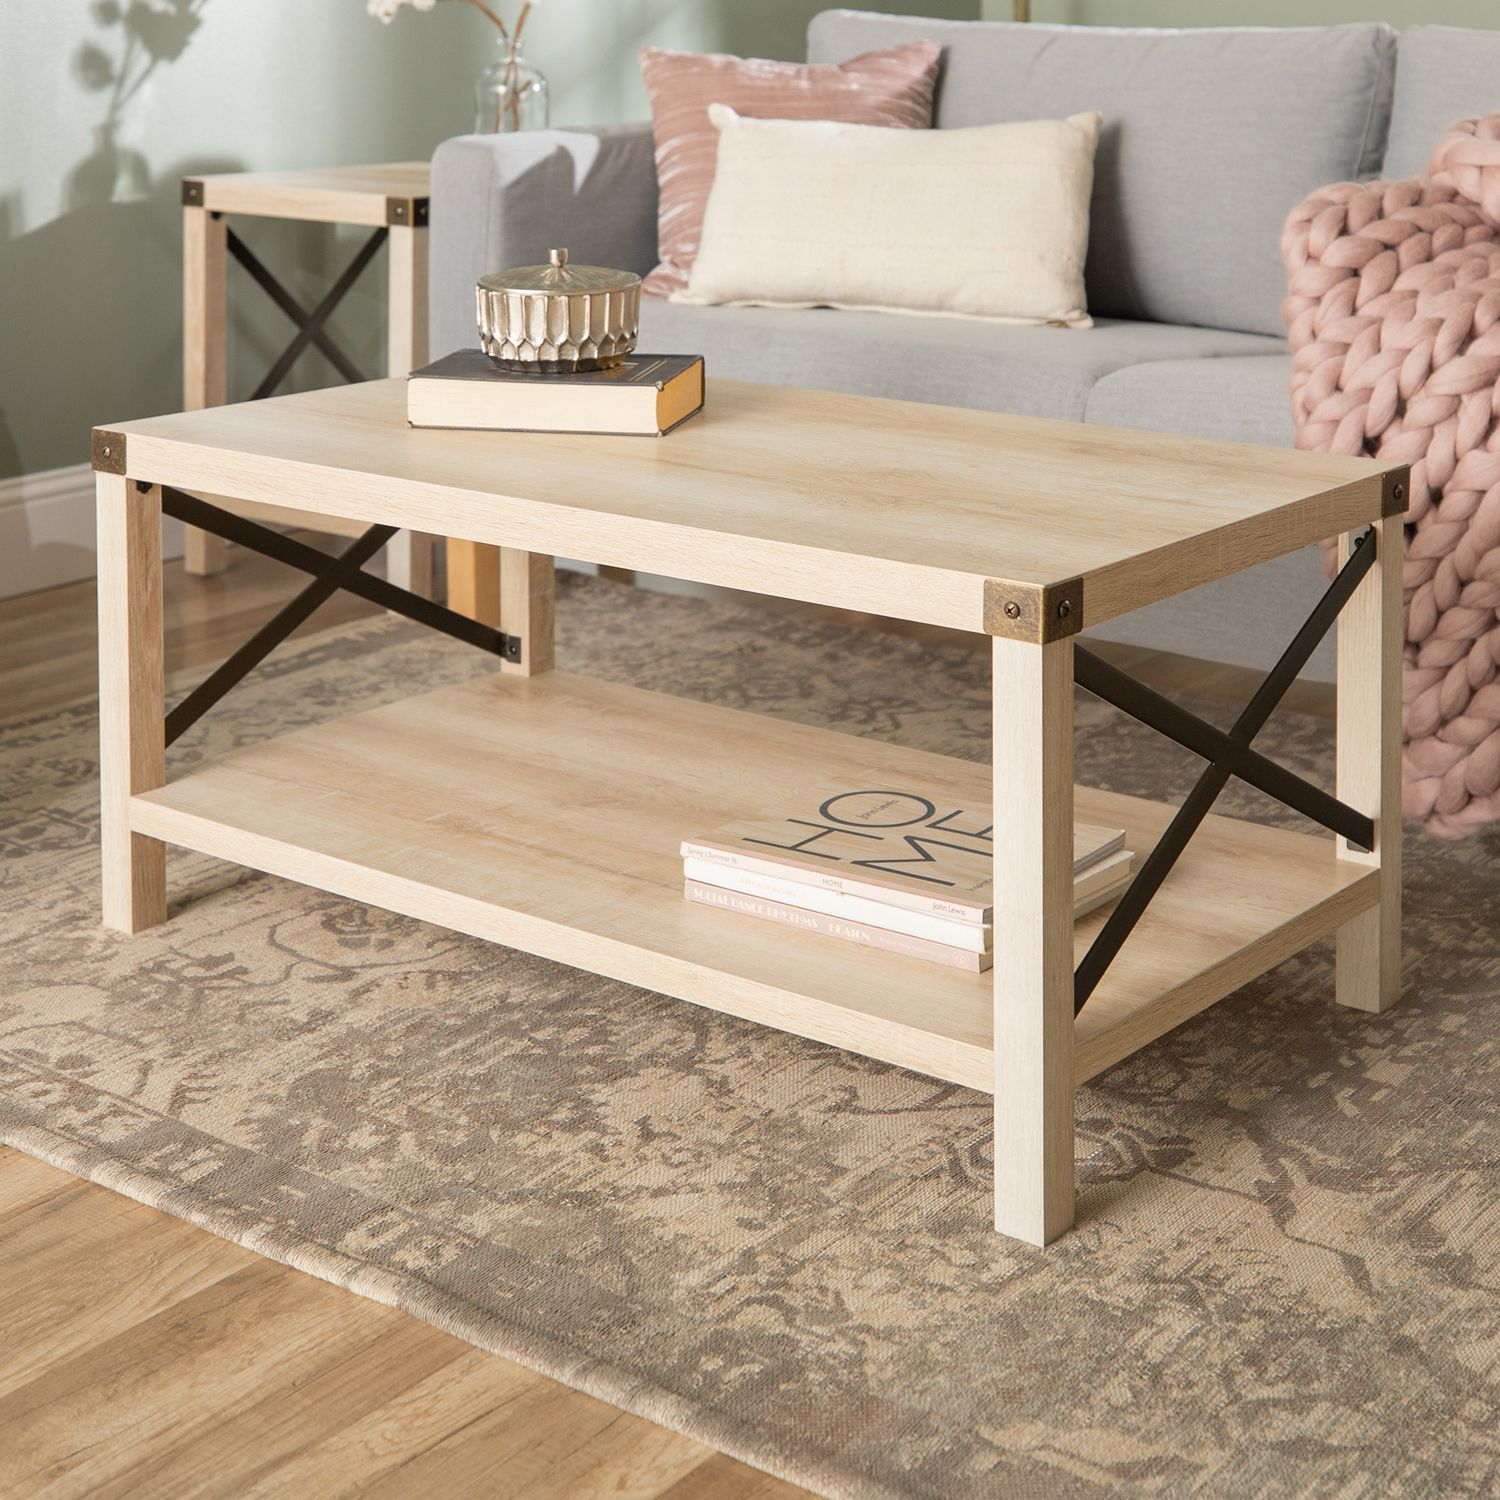 modern farmhouse white oak coffee table pier imports accent occasional chairs next mango wood dining threshold unfinished round adjustable lamp rustic outdoor furniture leather